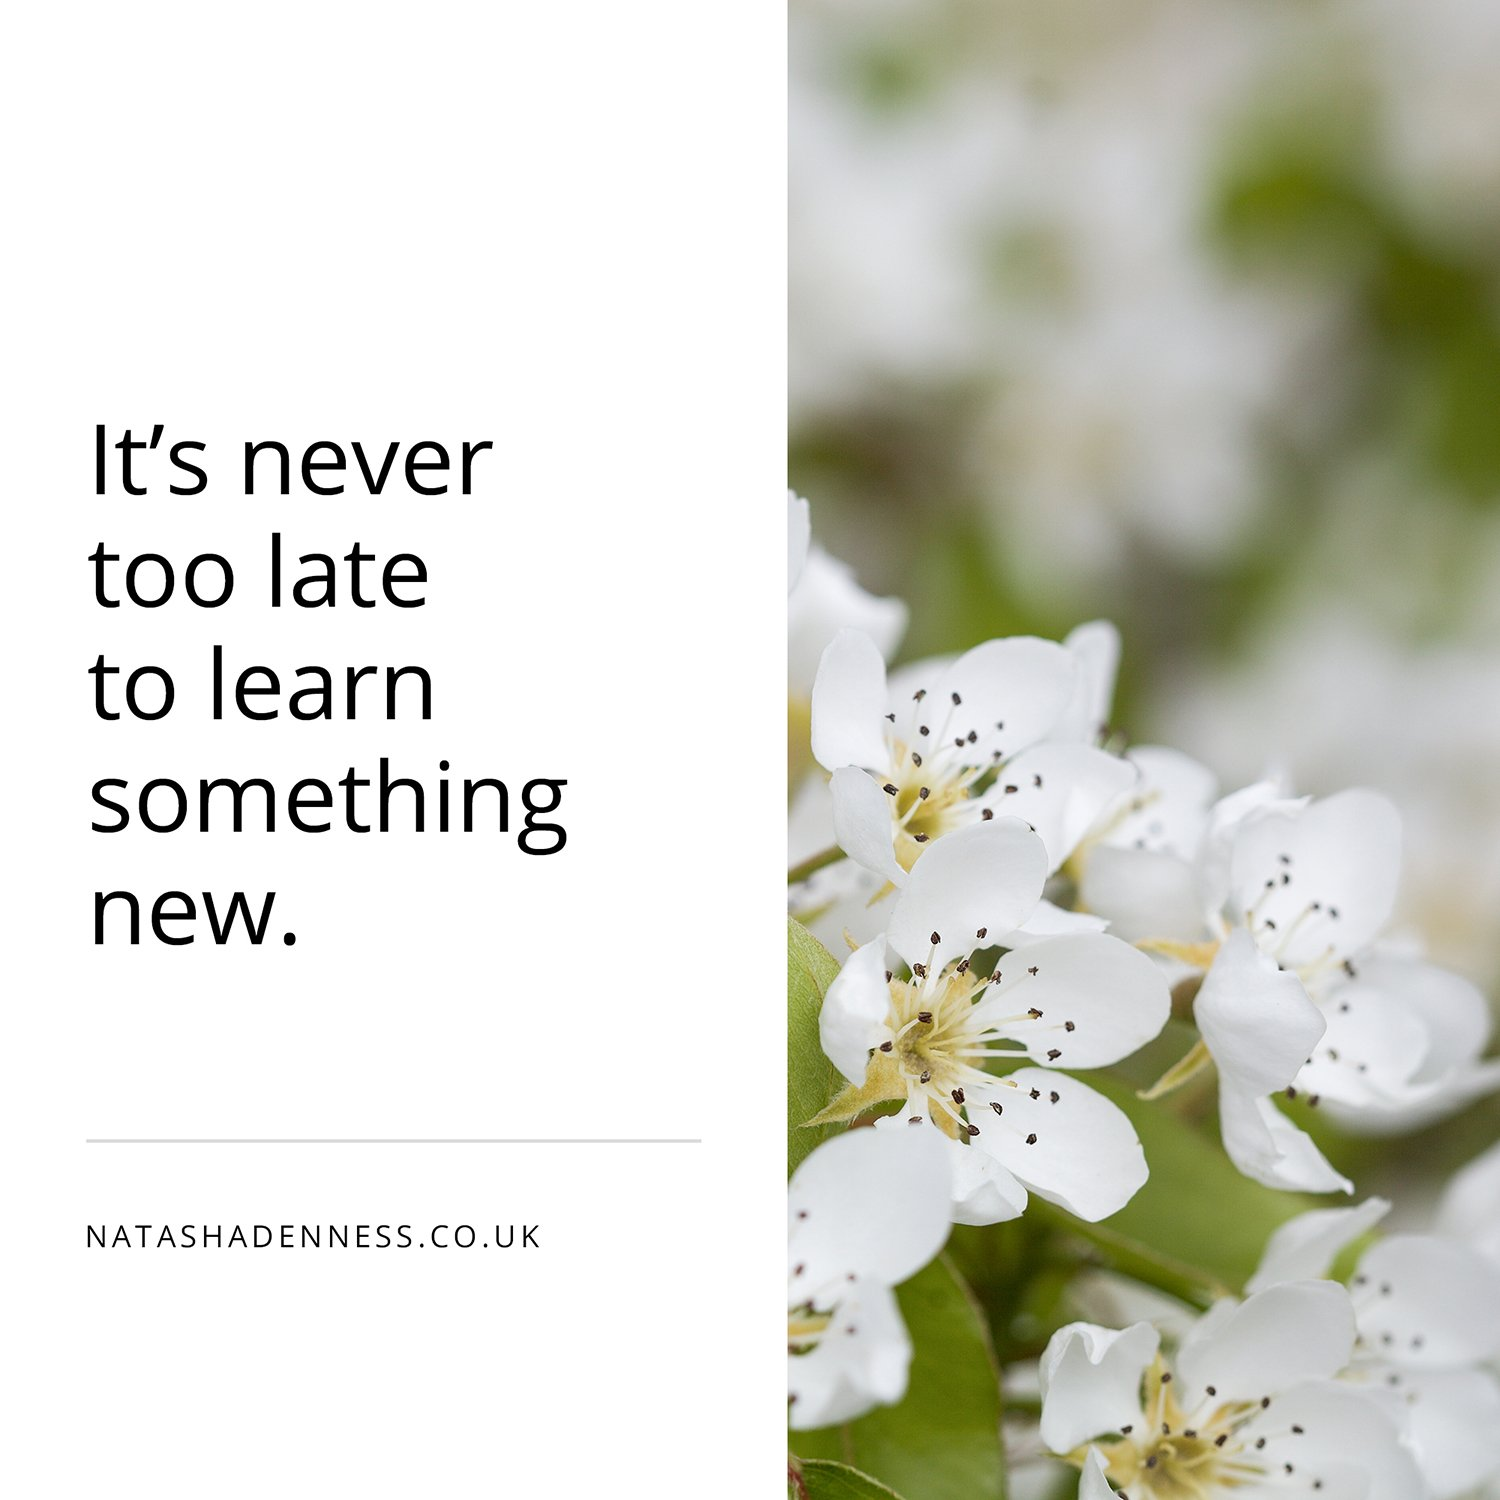 It's never too late to learn something new | Natasha Denness Coaching